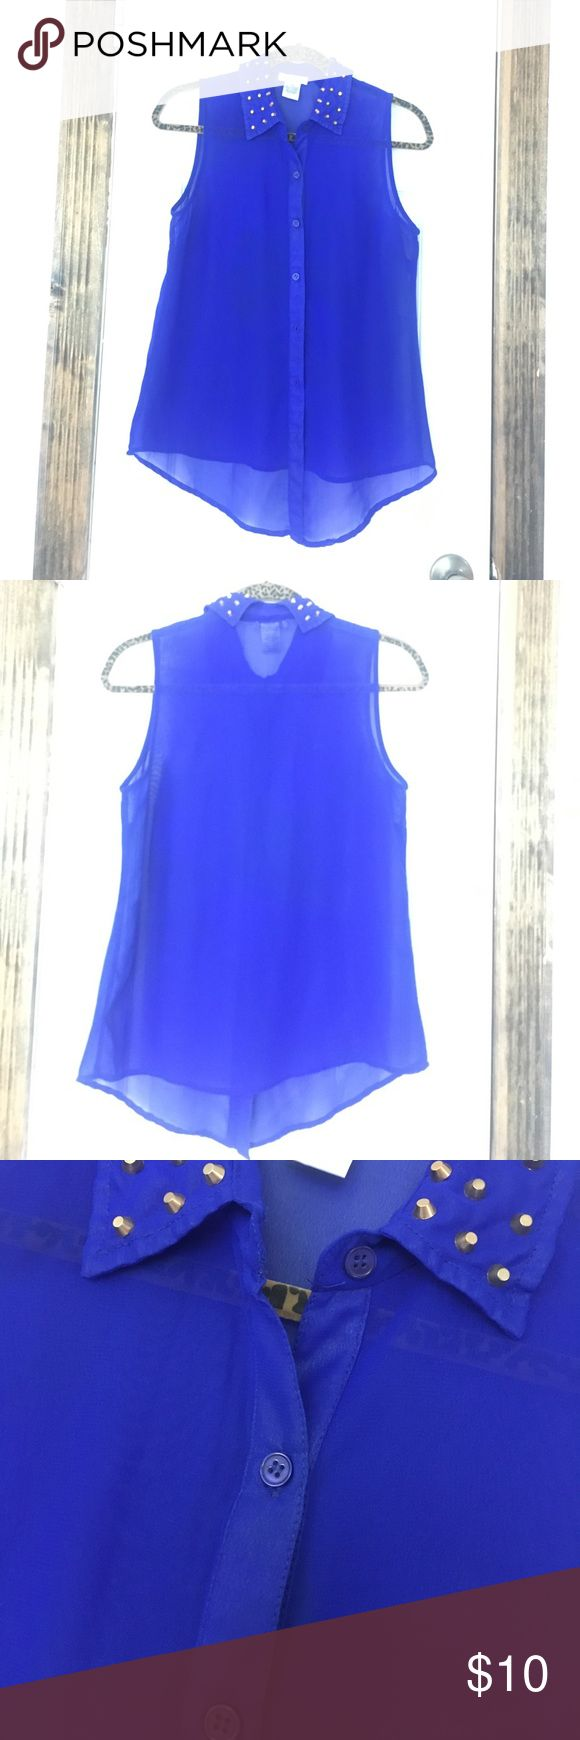 Electric Blue Studded Collar Blouse Electric blue sheer tank blouse with gold studded collar. Worn once or twice. Like new! Can be tucked, tied or worn as is. Great color! No trades. Dizzy Lizzy Tops Blouses